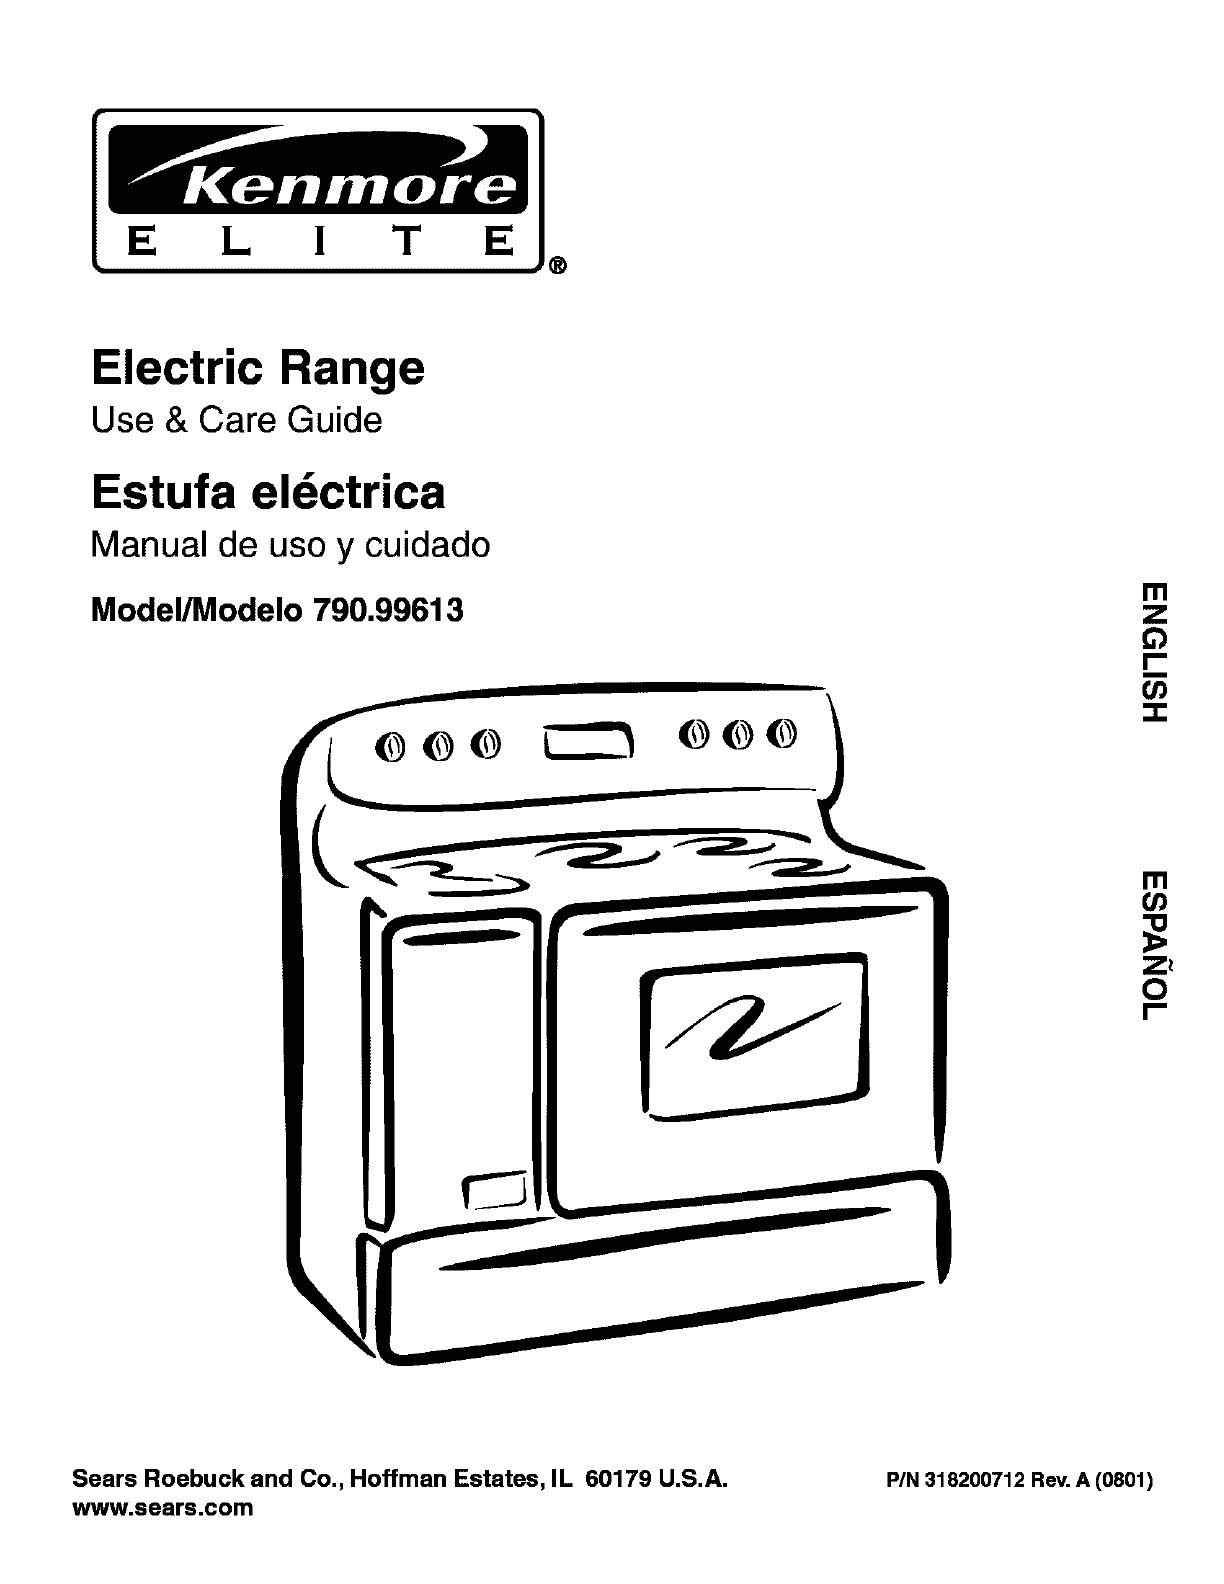 Kenmore Oven: Kenmore Oven User Manual